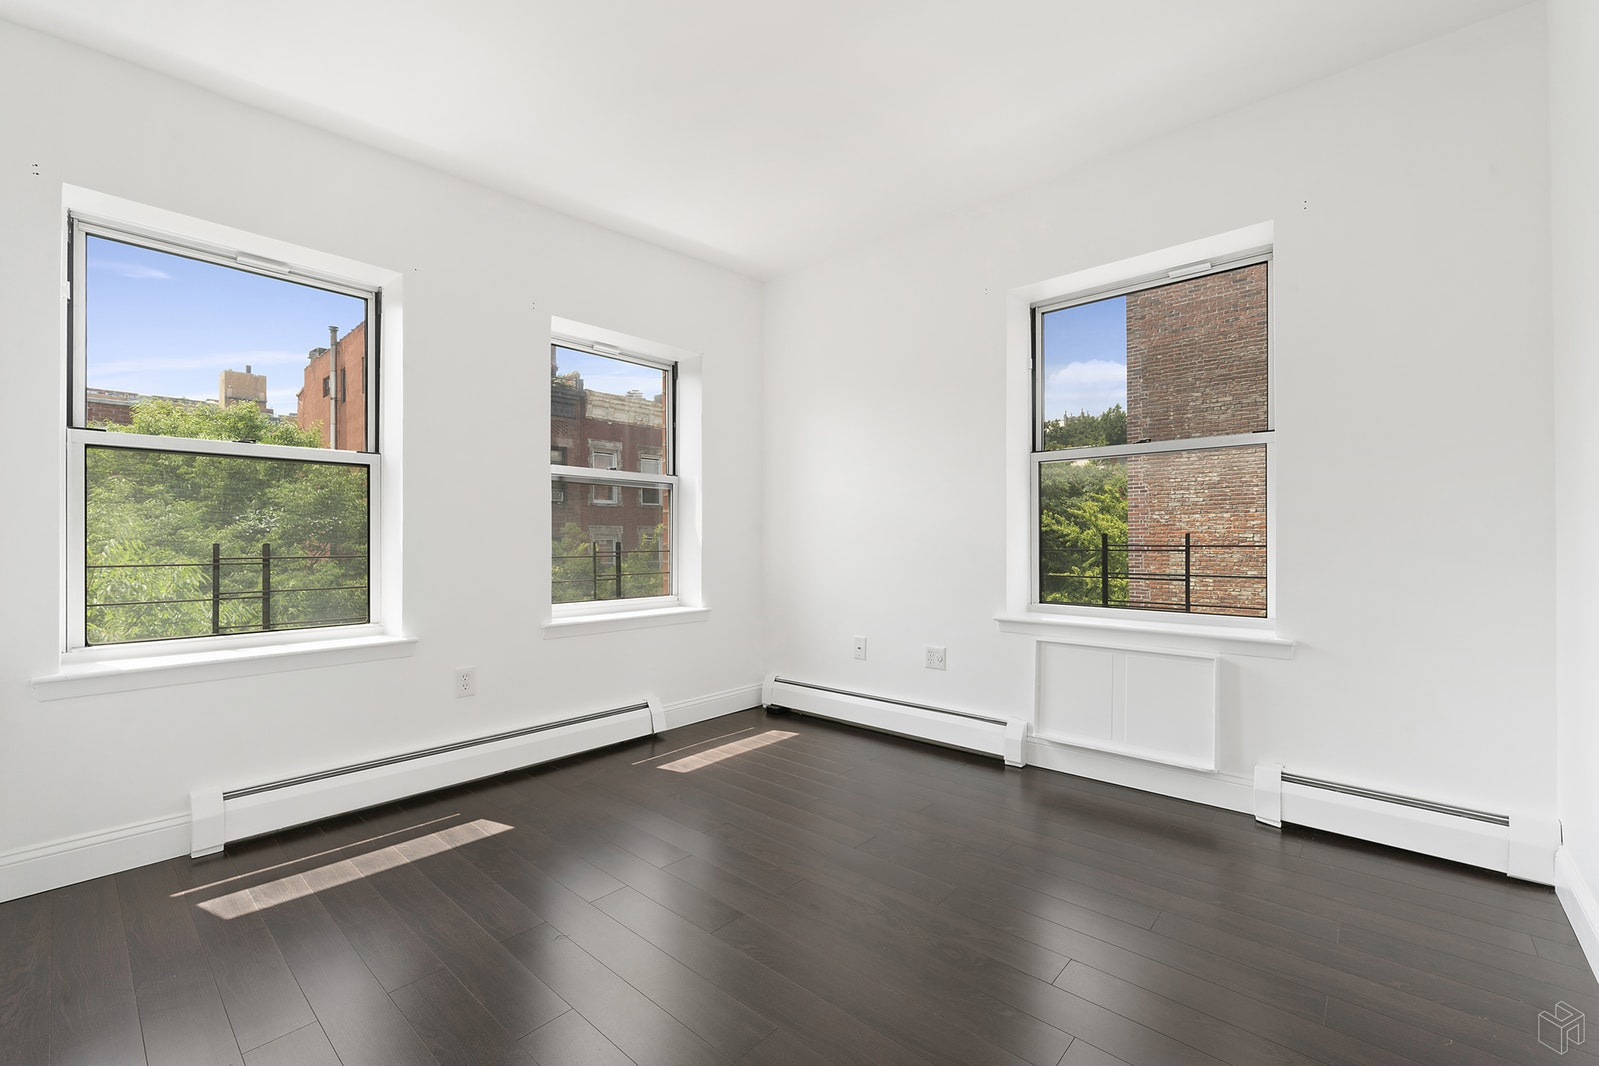 H-U-G-E 3 Br W/ Ultra Low CC'S & Taxes, Upper Manhattan, NYC, 10030, $1,249,000, Property For Sale, Halstead Real Estate, Photo 7